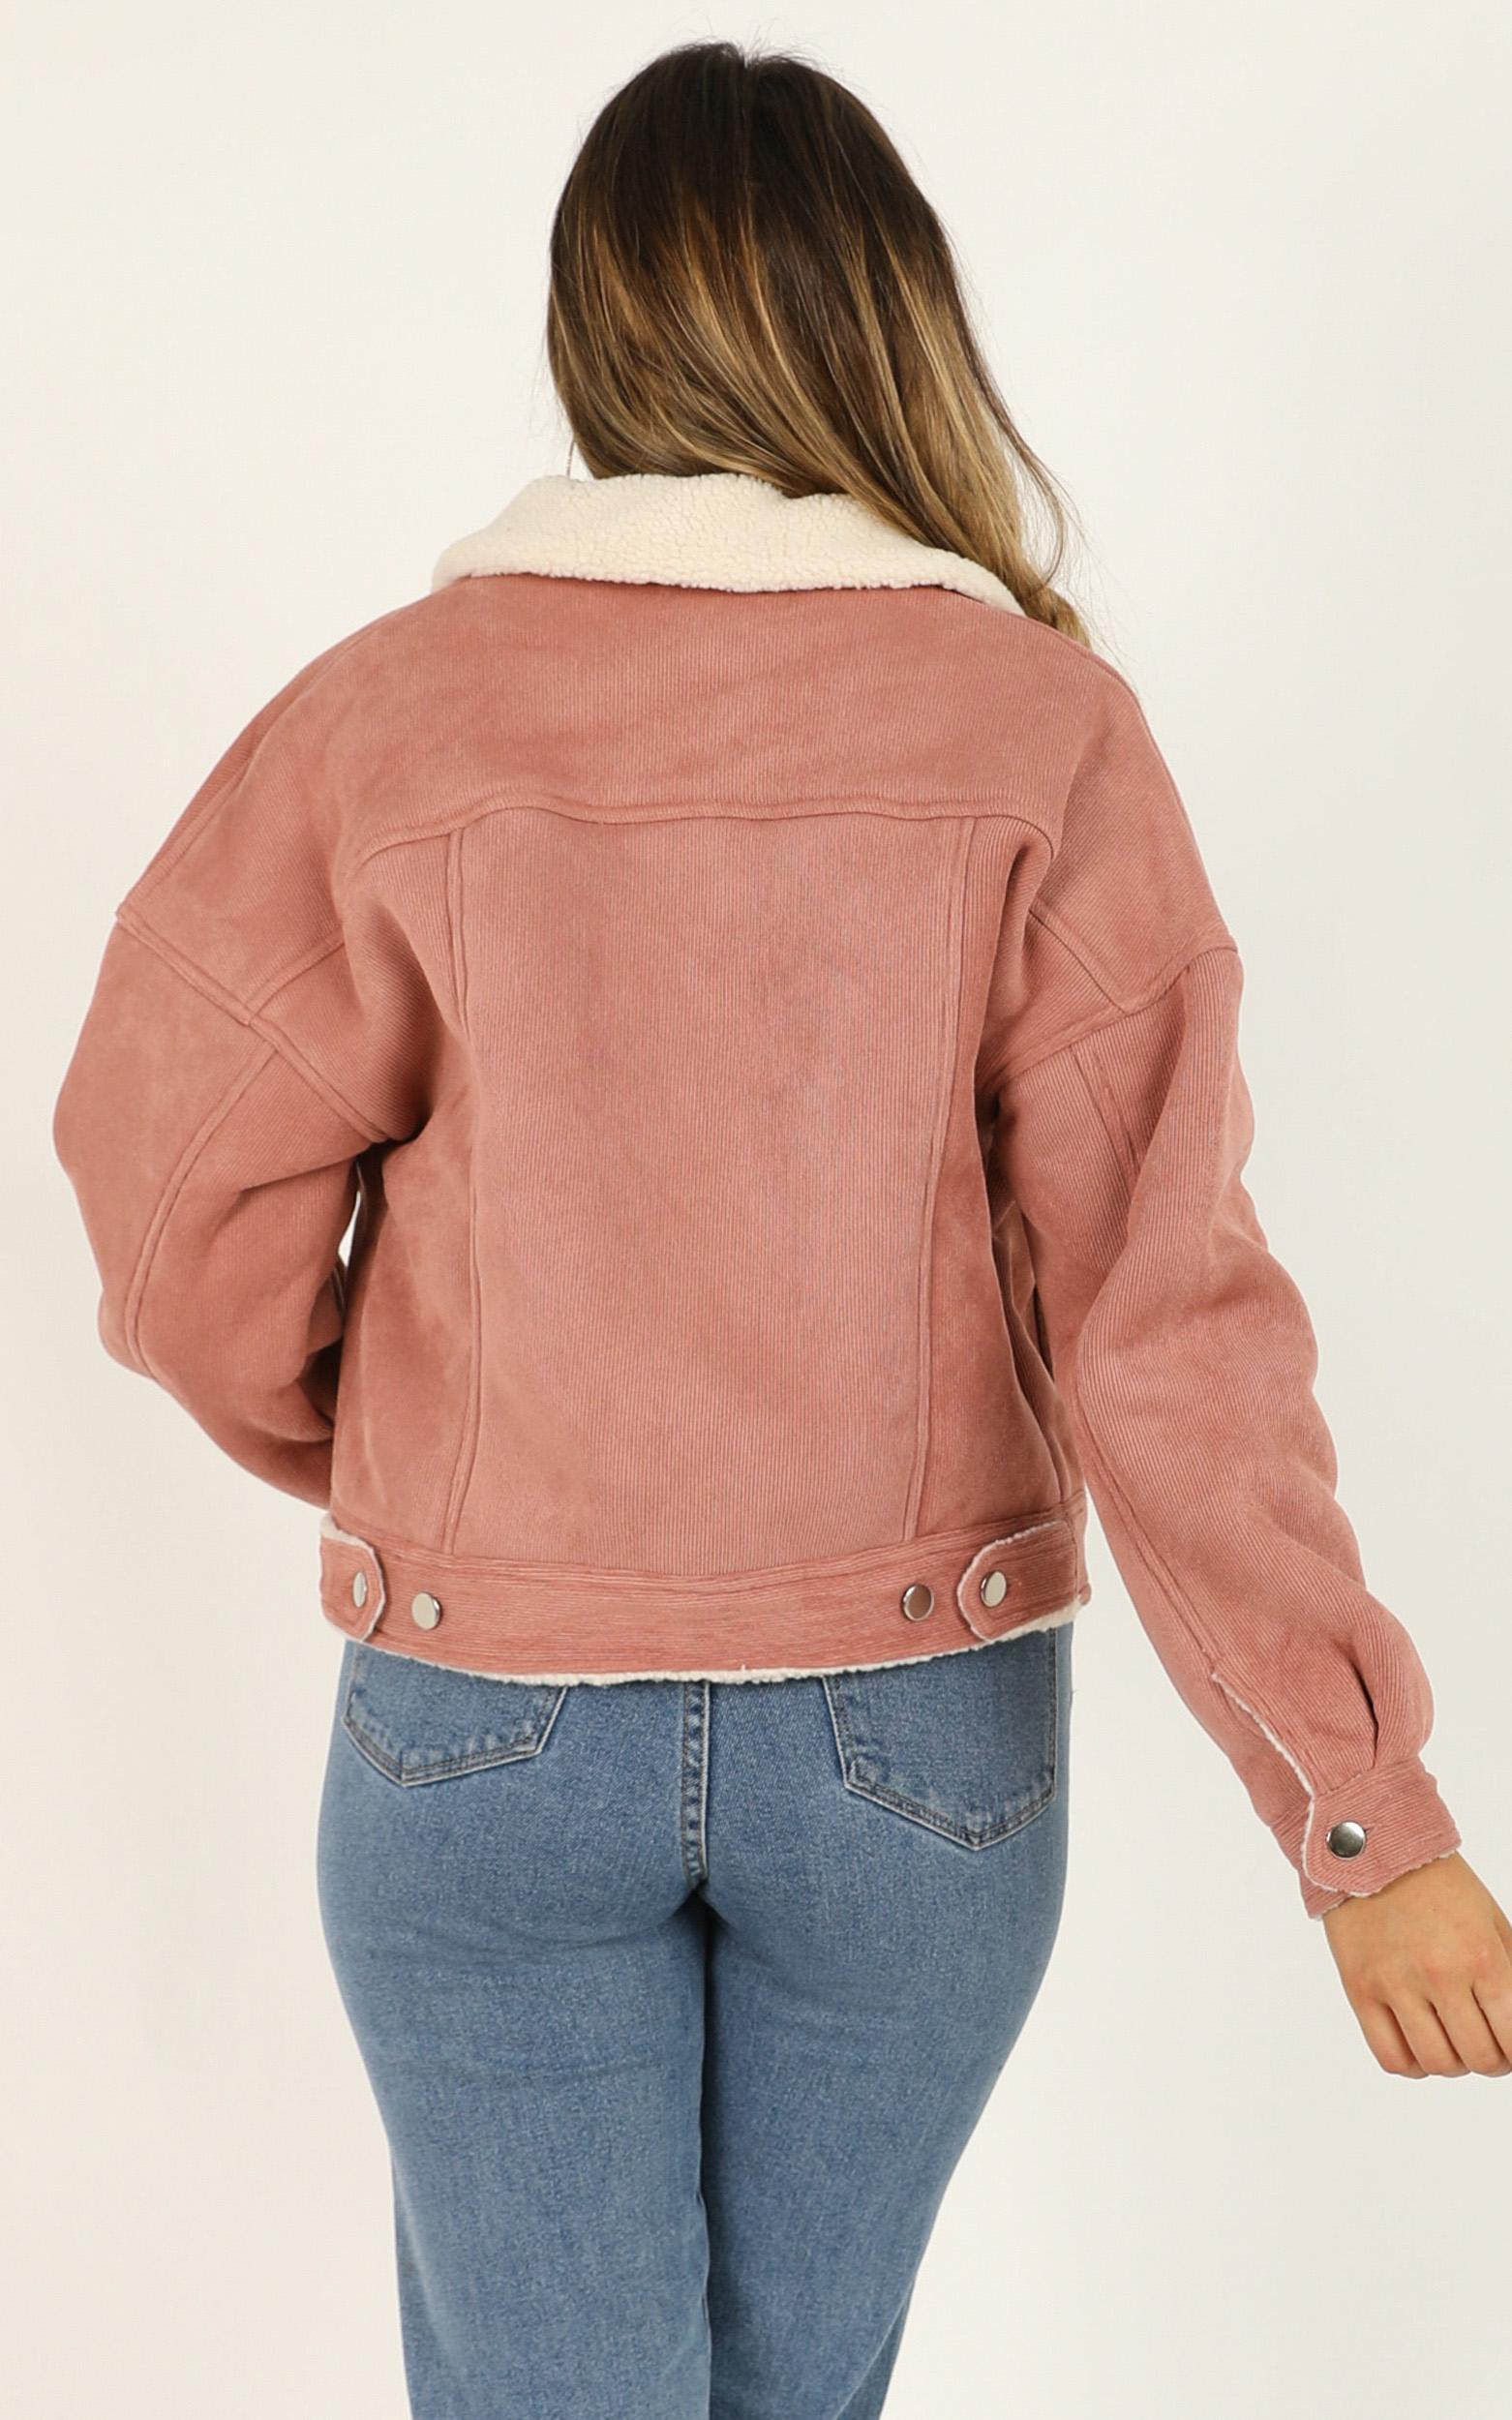 Gemini Love jacket in blush cord - 12 (L), Blush, hi-res image number null